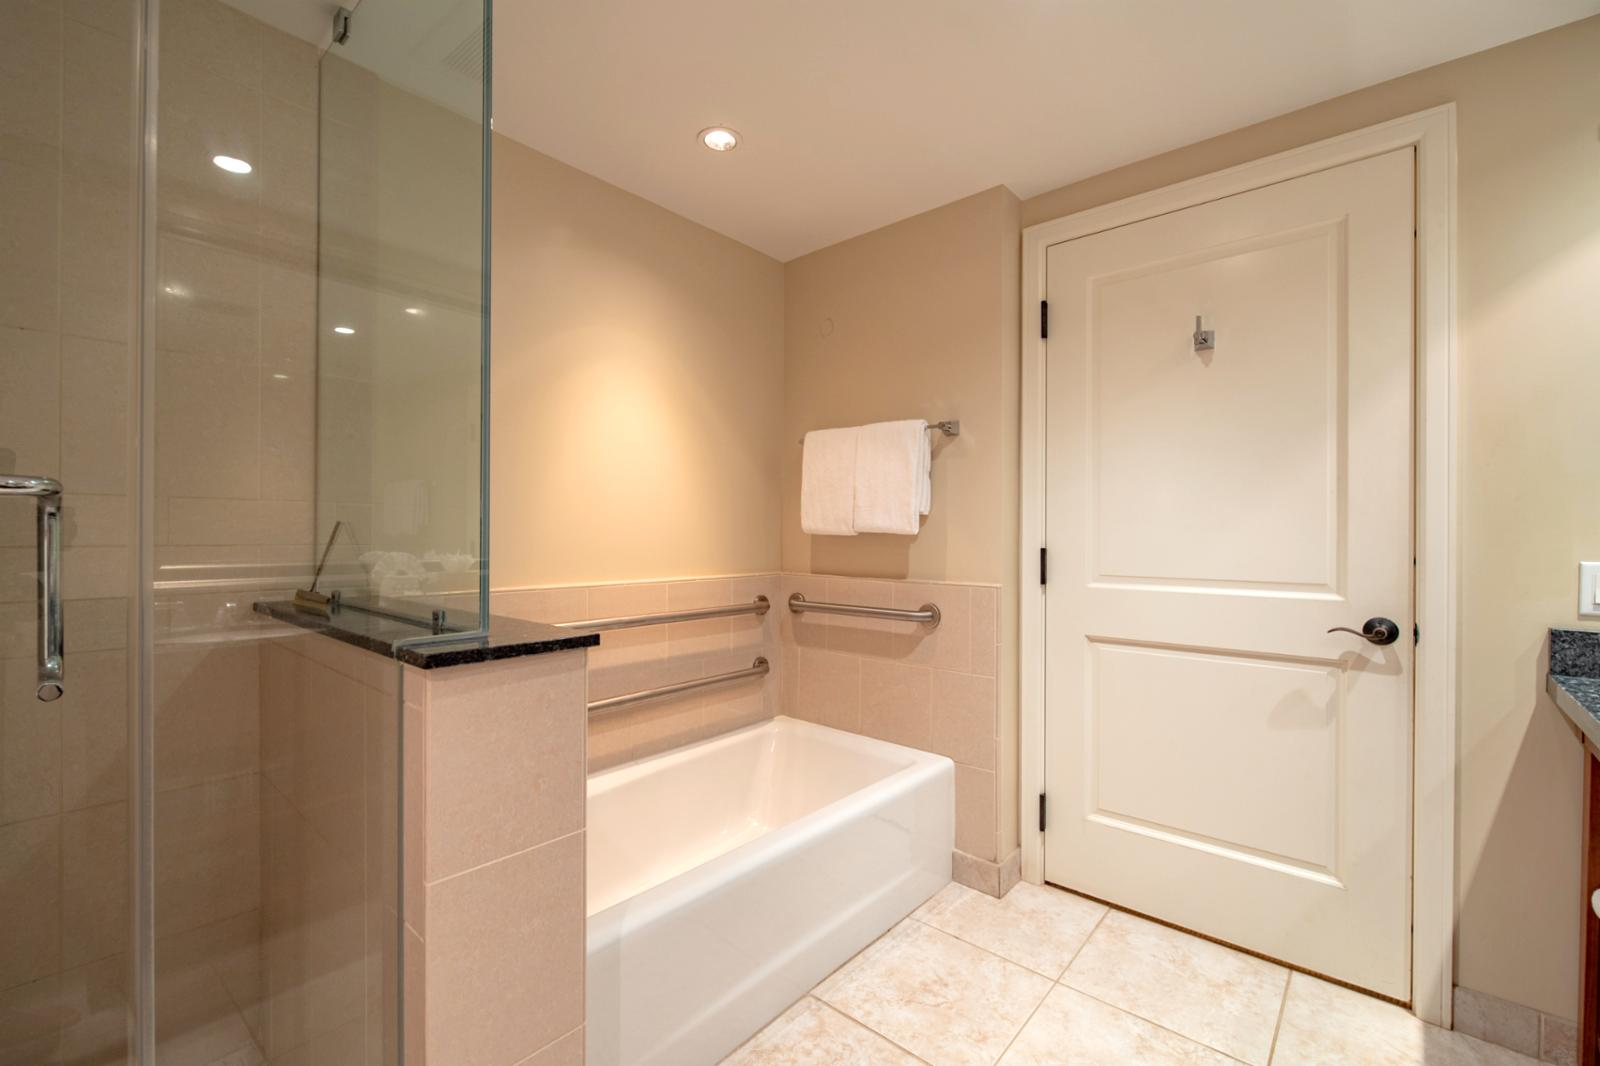 Floor to ceiling glass enclosed shower with adjacent tub